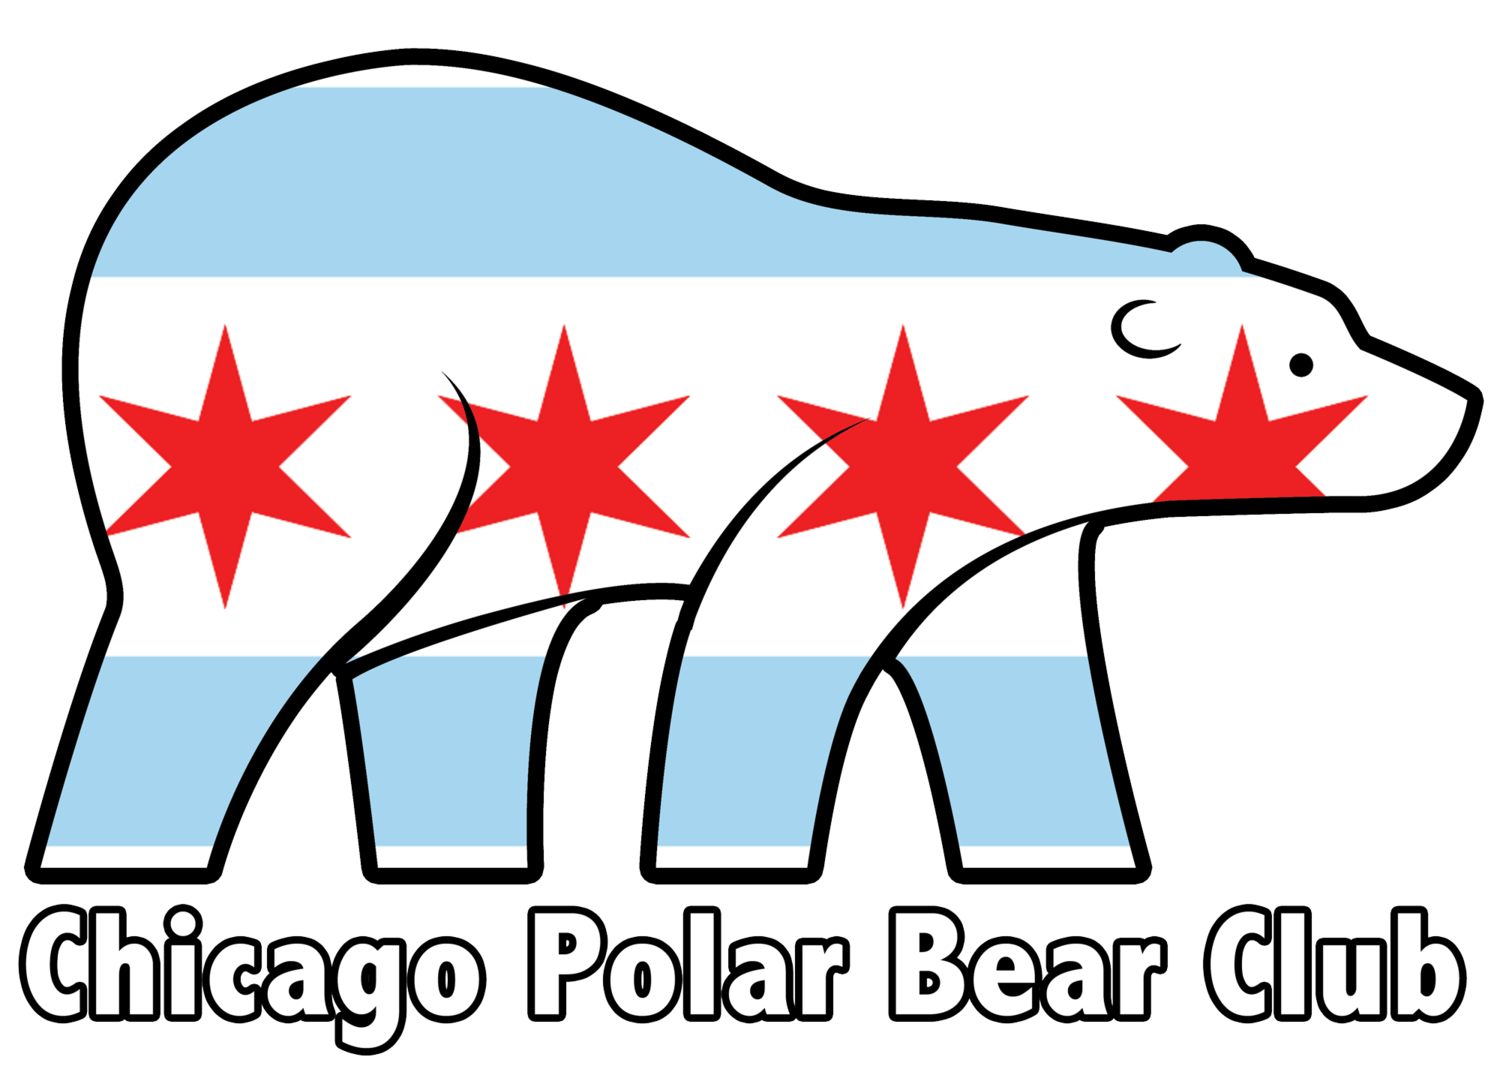 Chicago club formatw. Diving clipart polar bear picture freeuse library